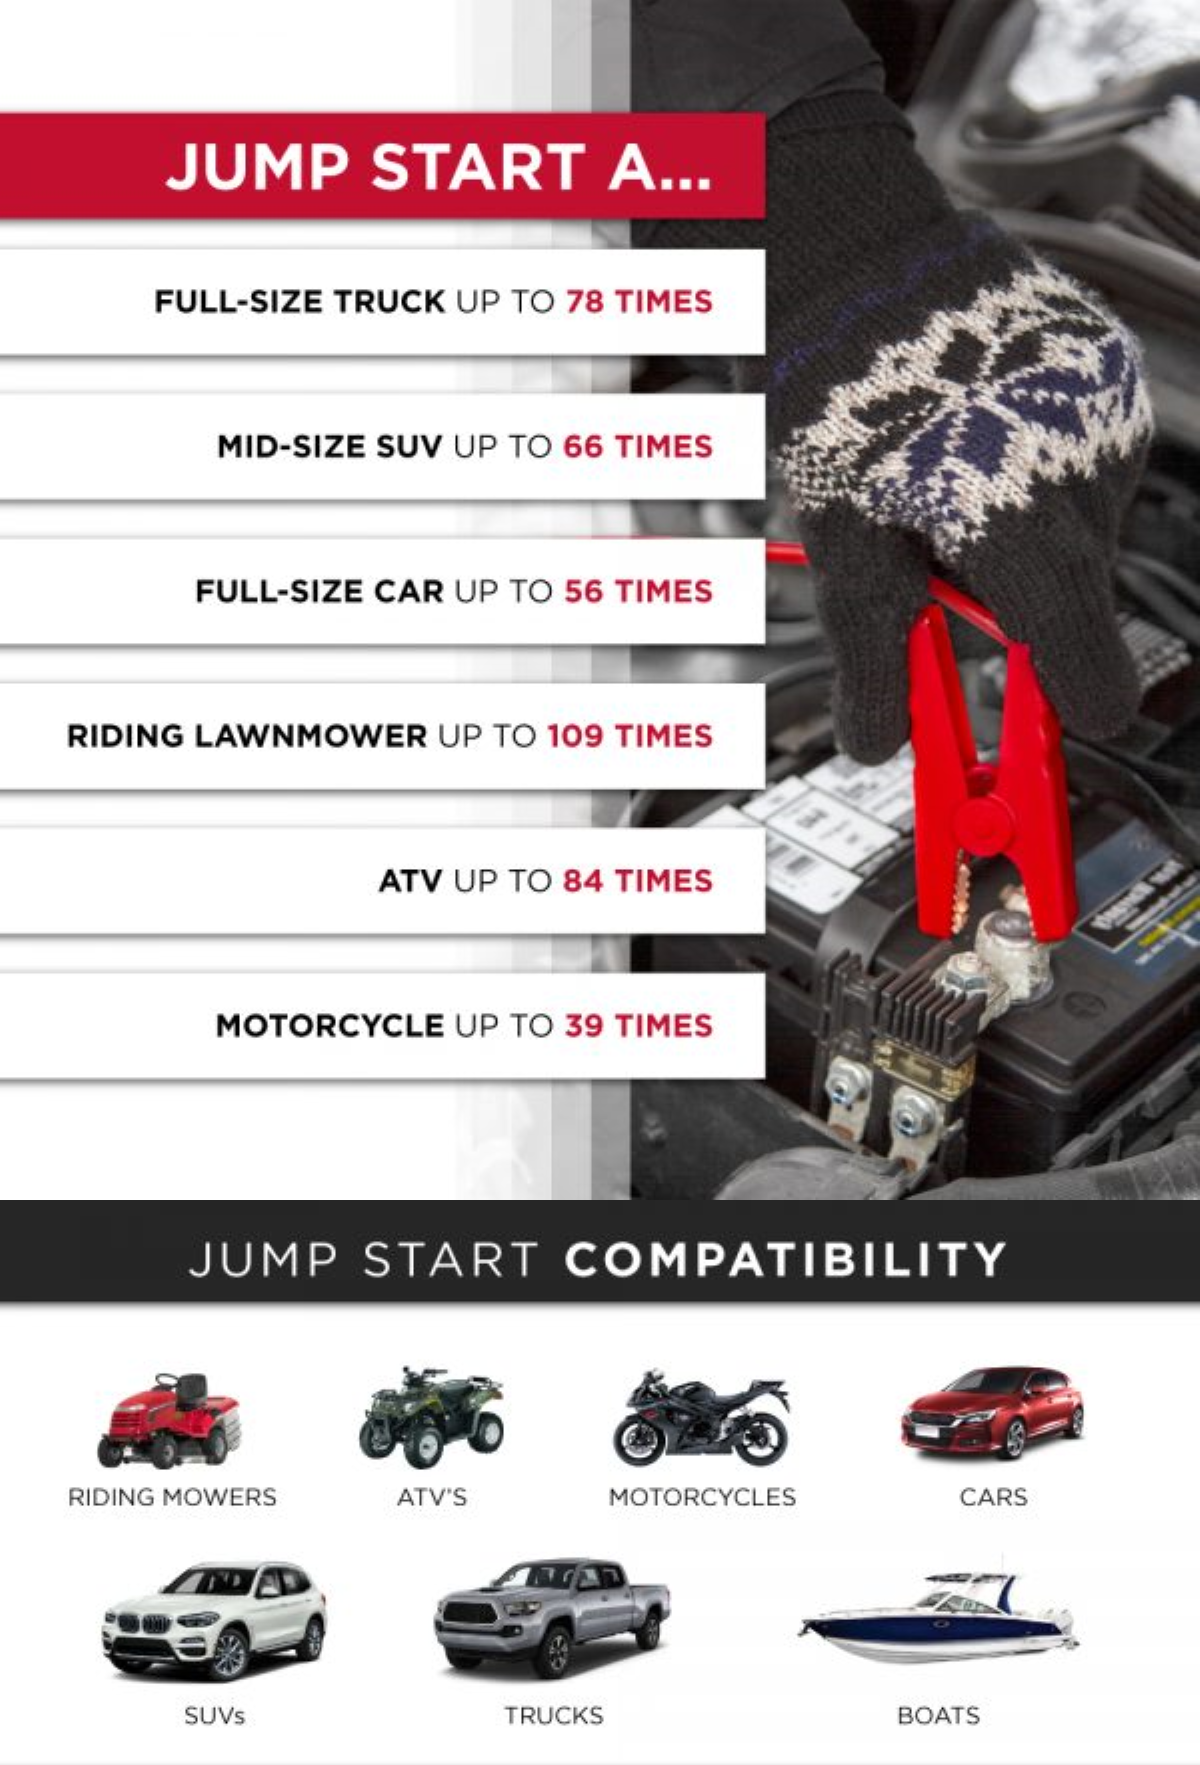 Jumpsmart - As a Vehicle Jump Starter